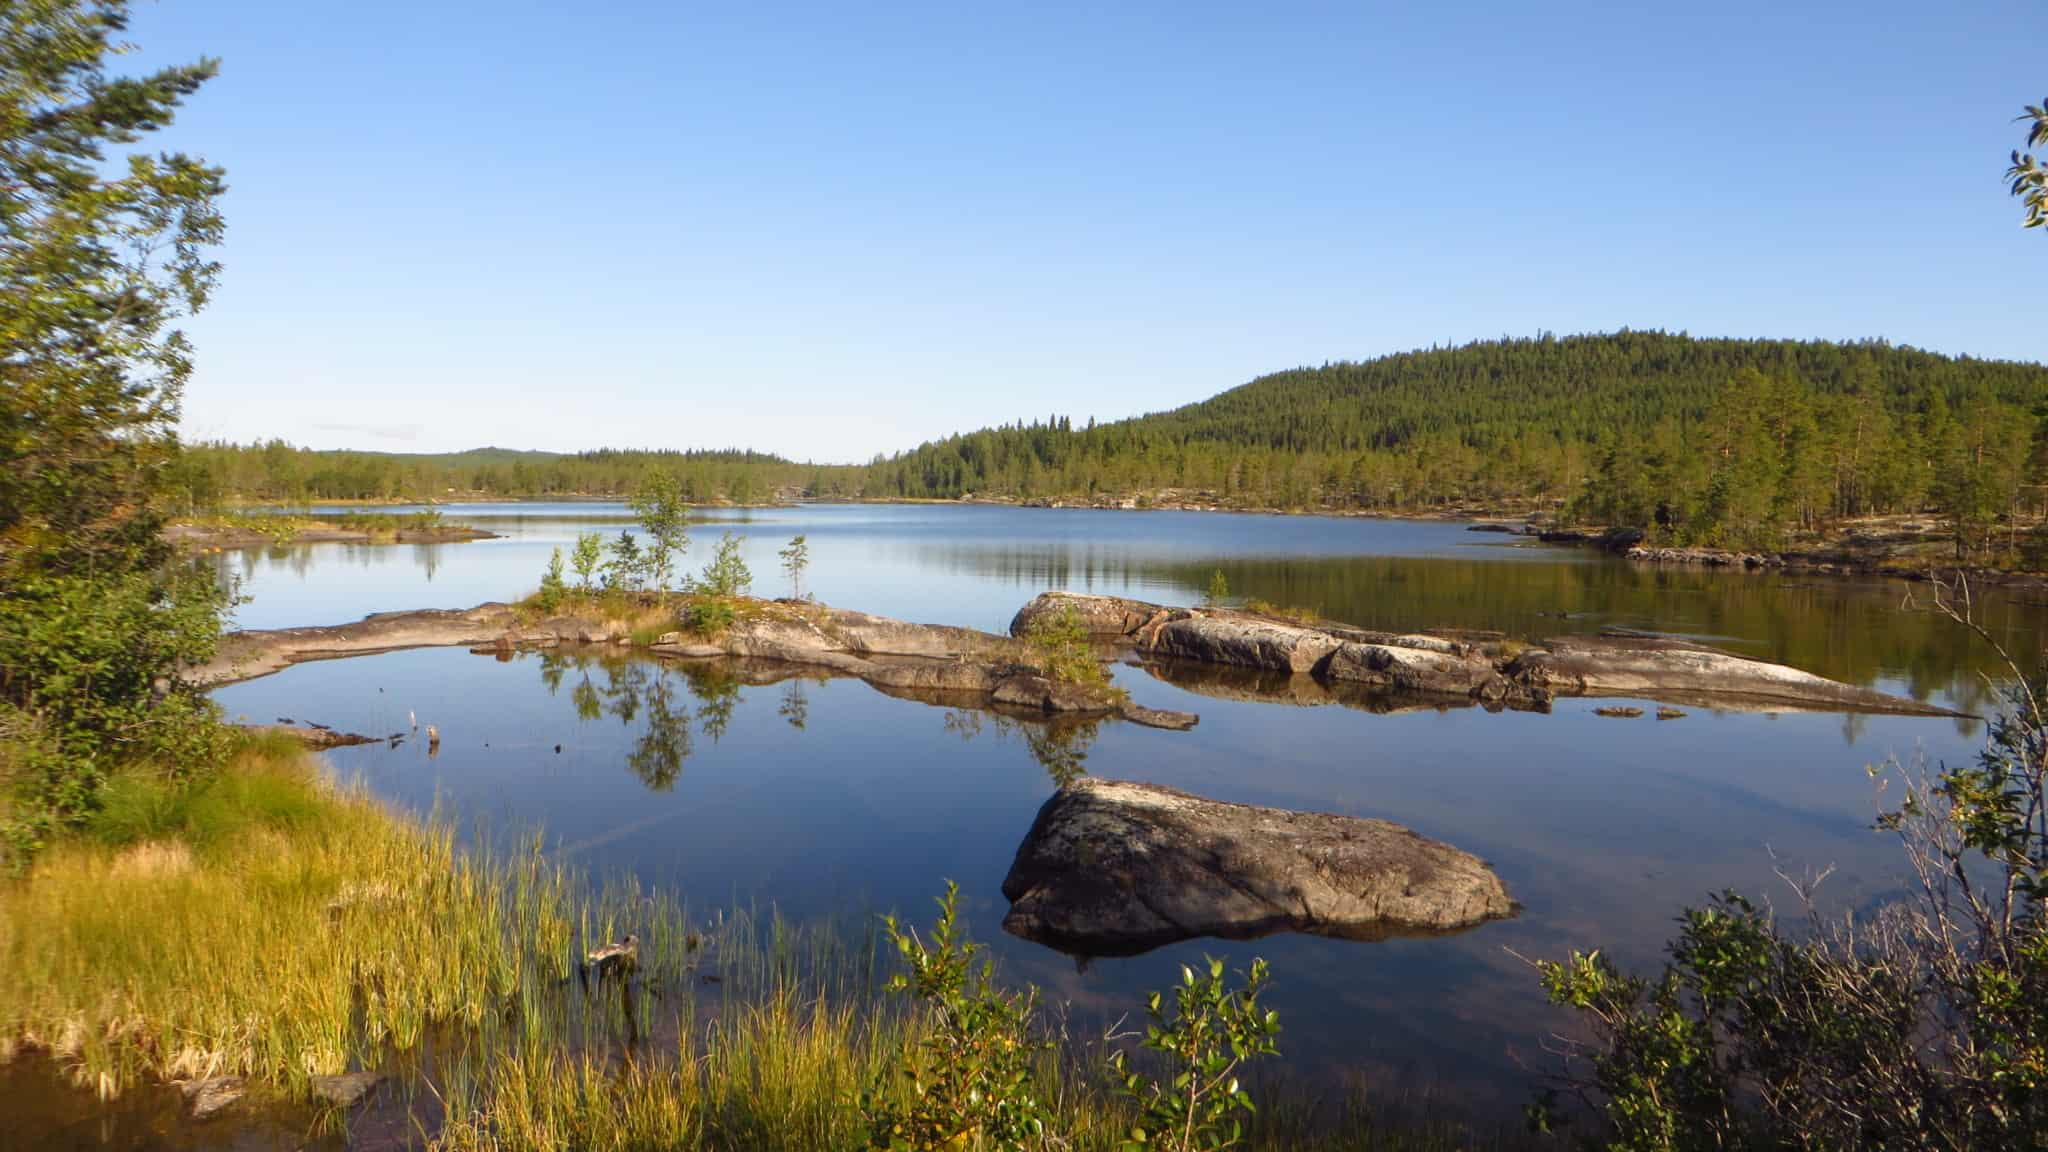 The diverse nature around Ostersund makes all kinds of outdoor sports activities possible